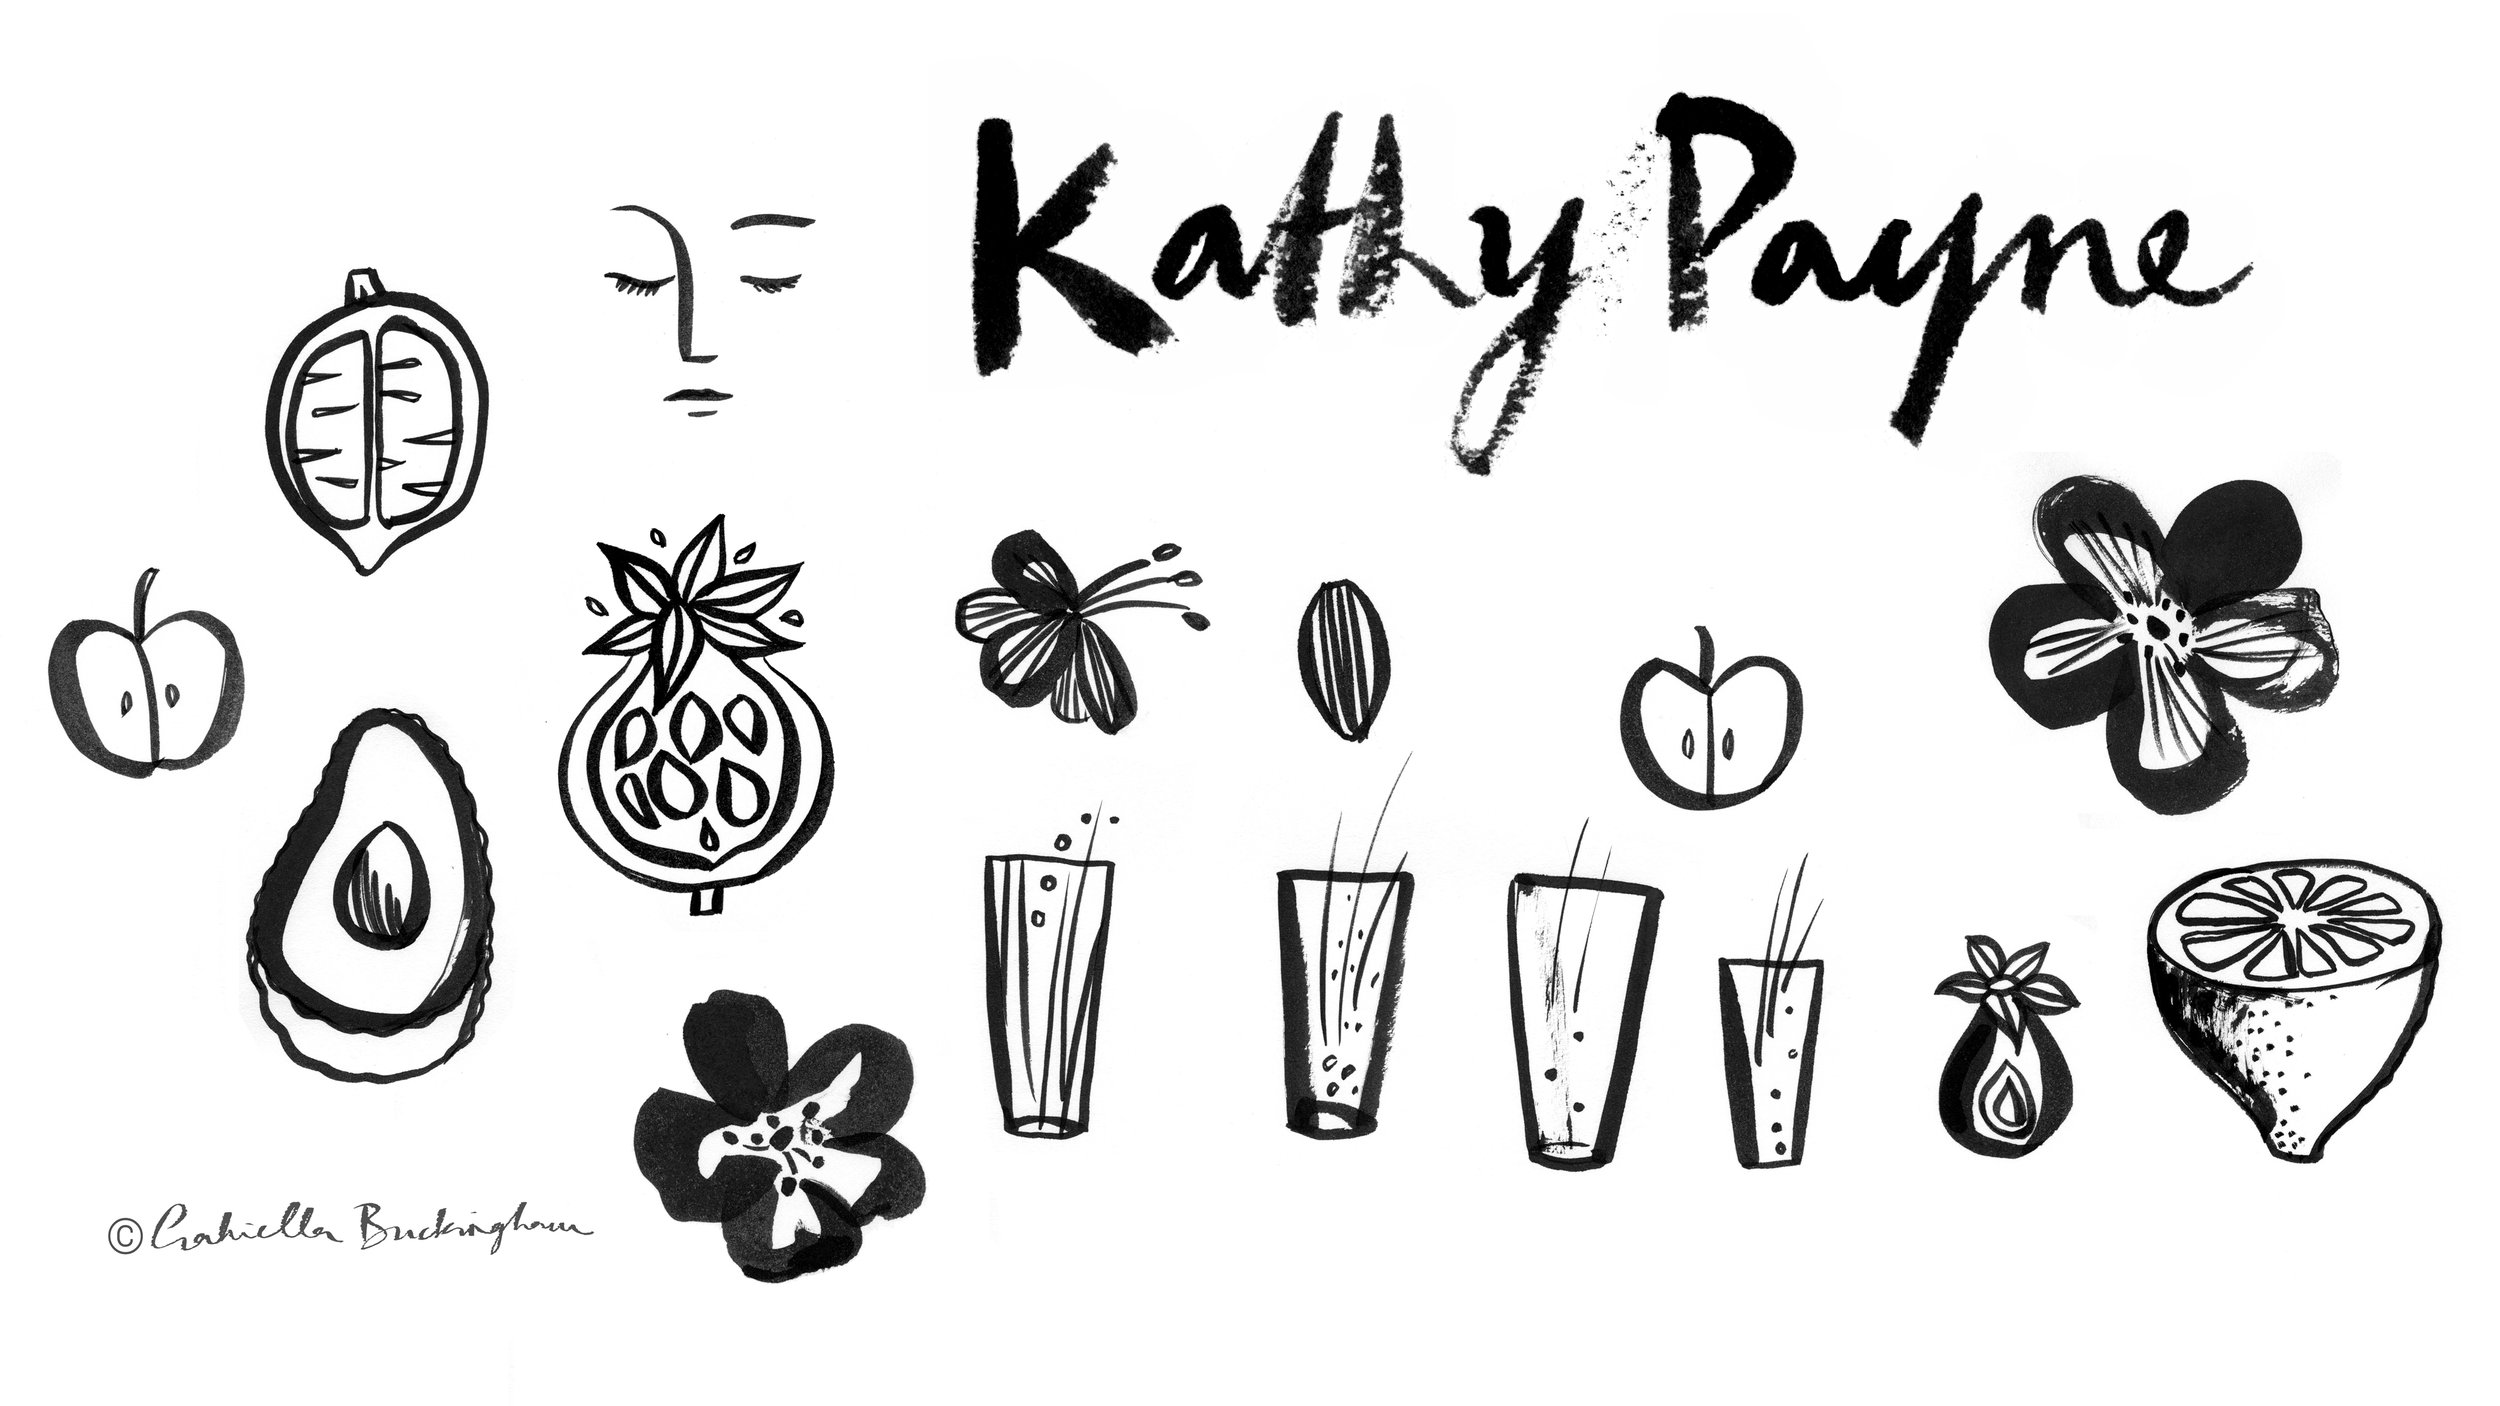 kathy-payne-logo-and-illustrations.jpg